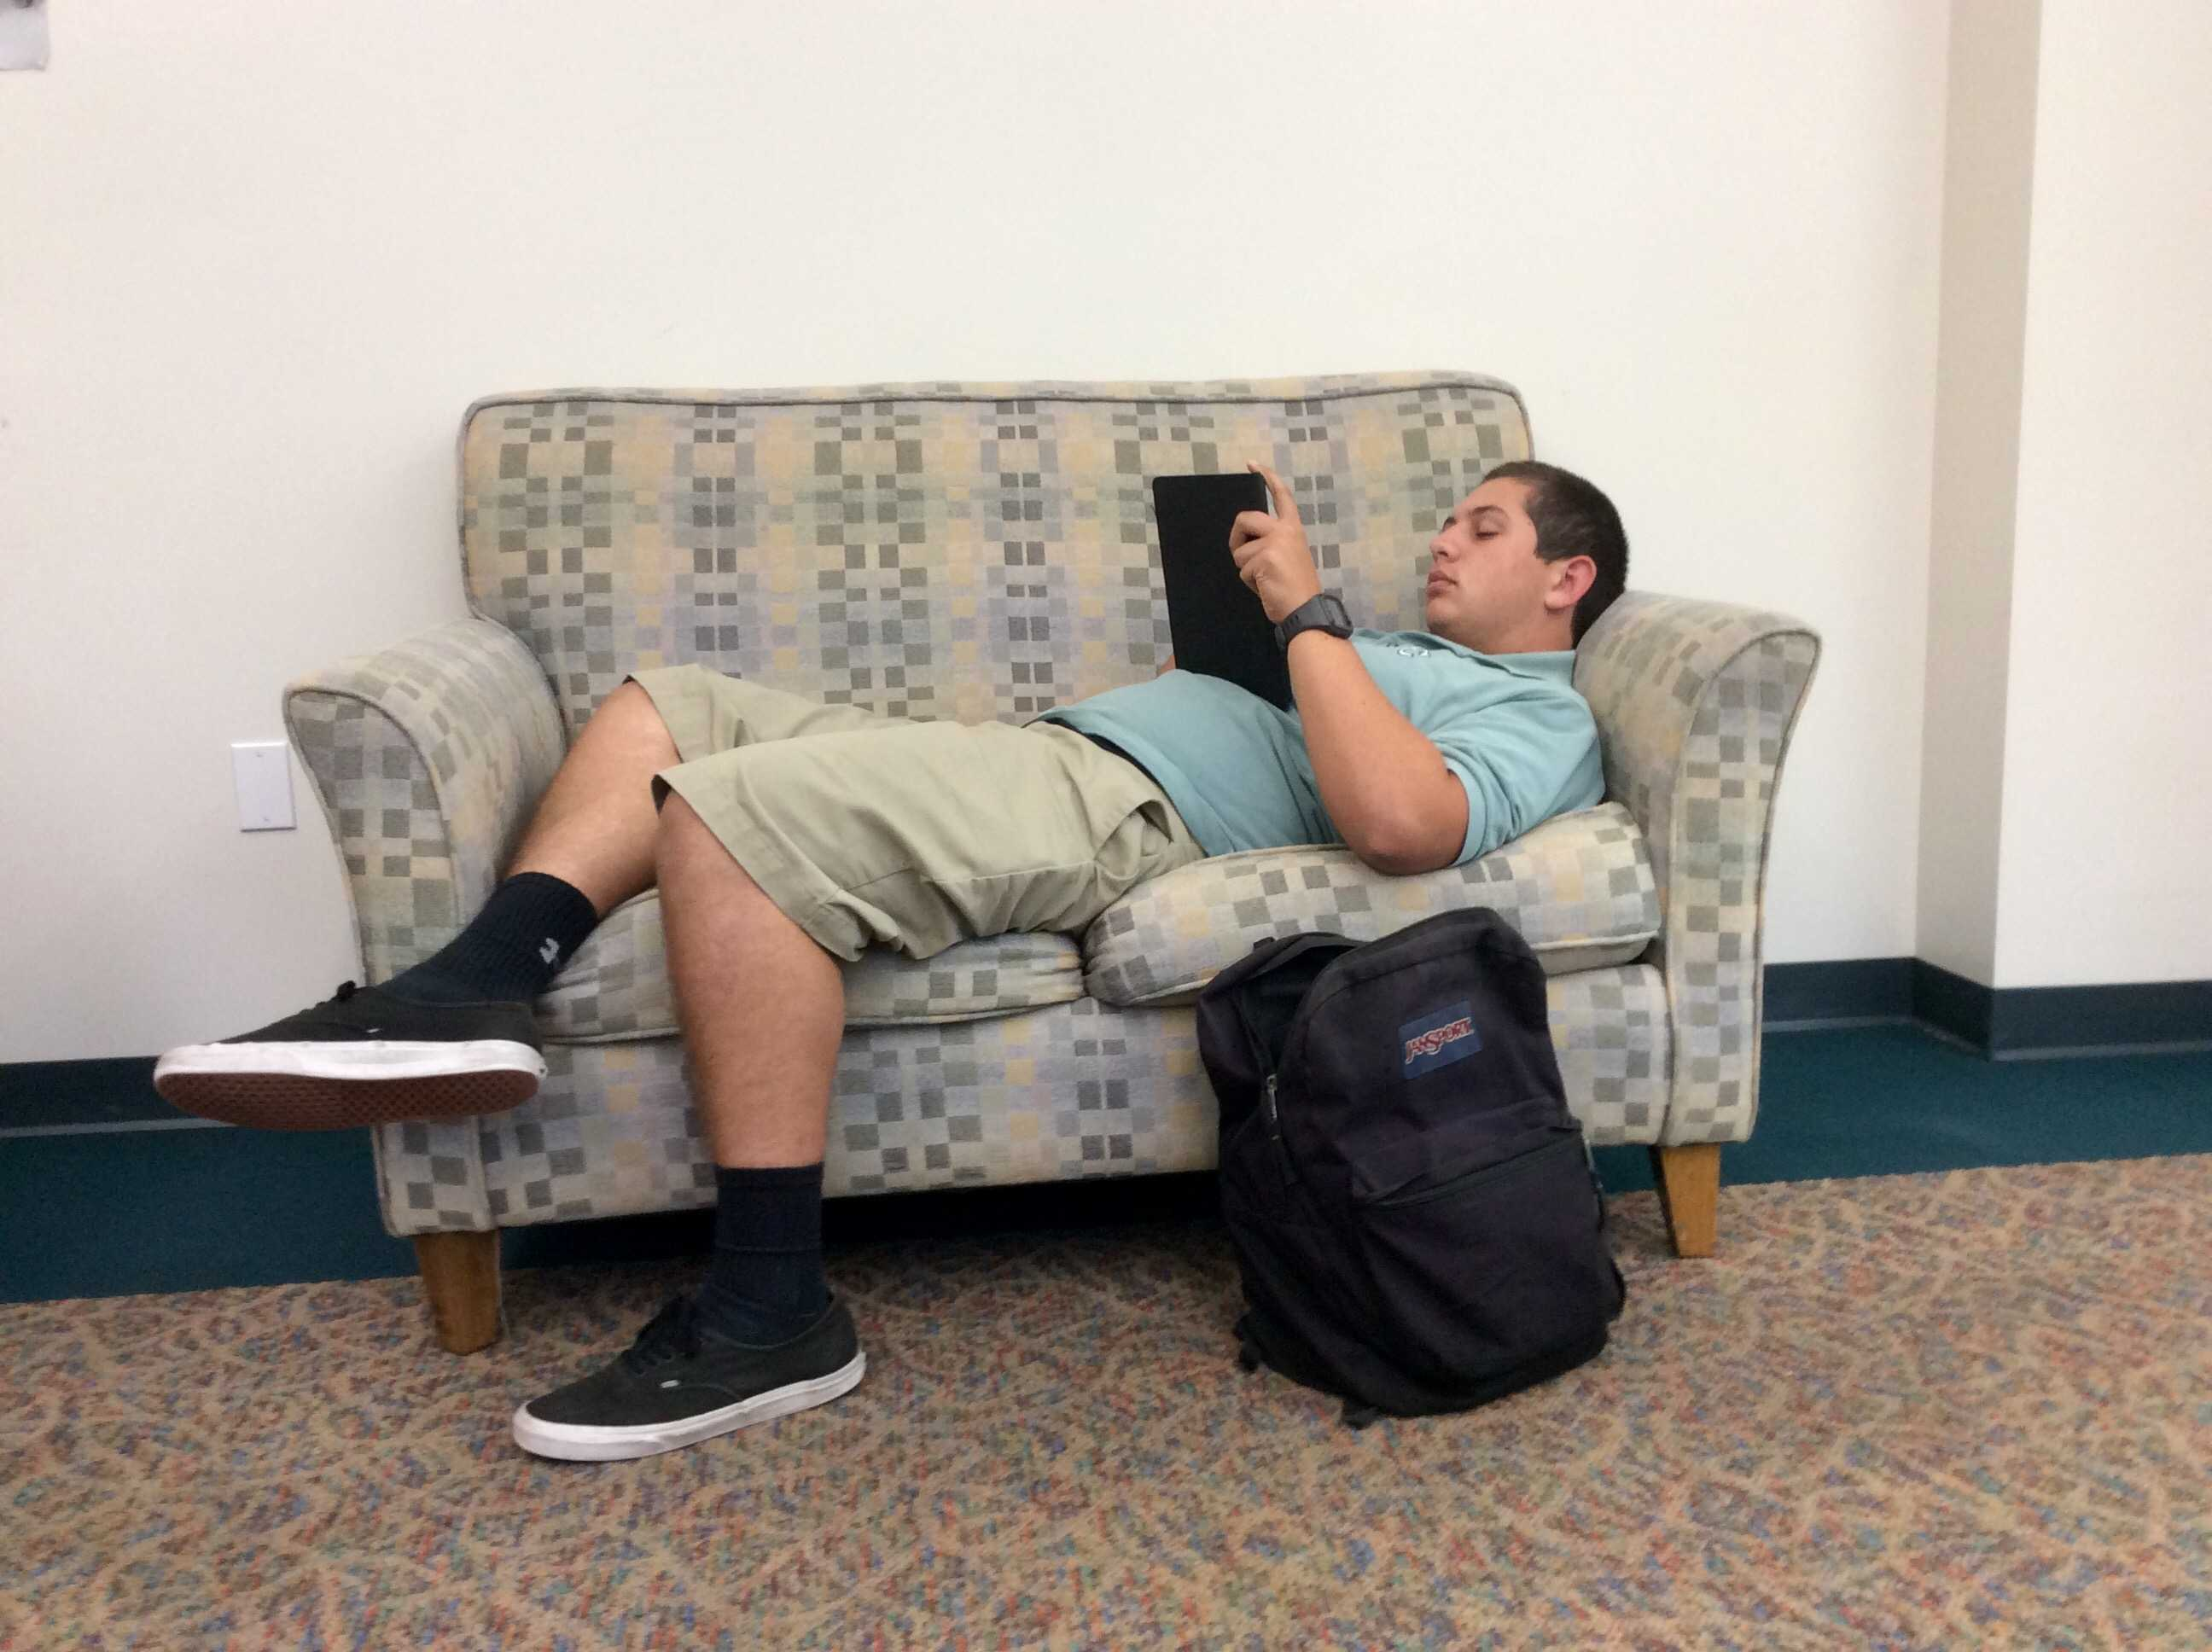 Nicholas Turk '16 falls victim to Senioritis in his seventh period study hall class where he is found napping on camera.